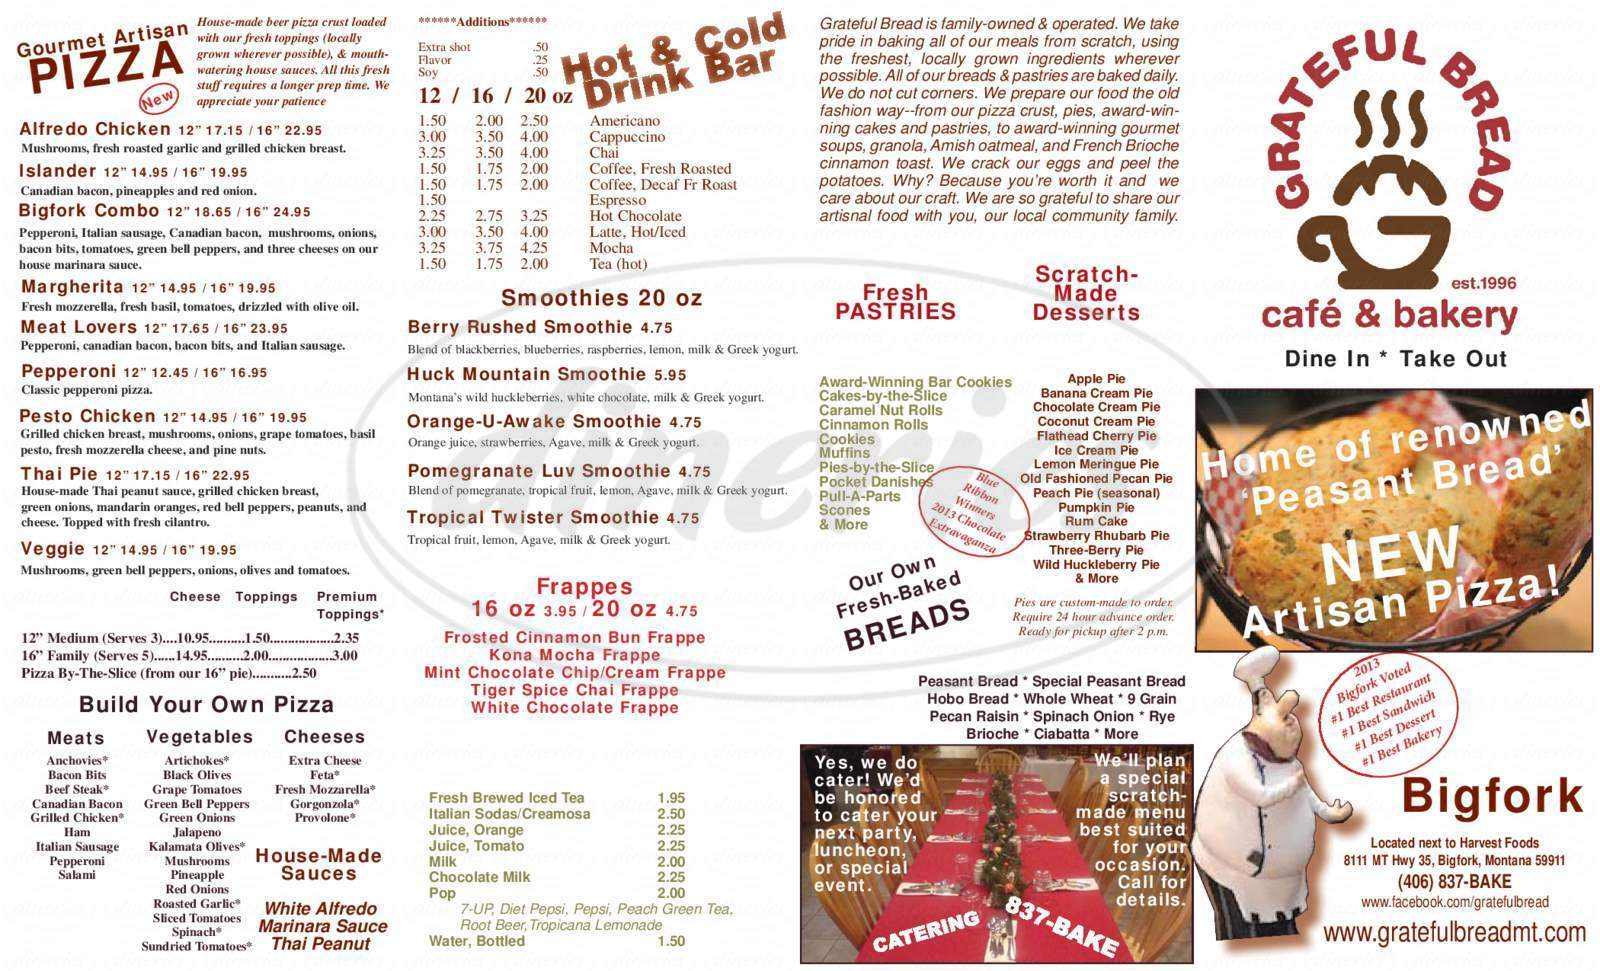 menu for Grateful Bread Cafe & Bakery